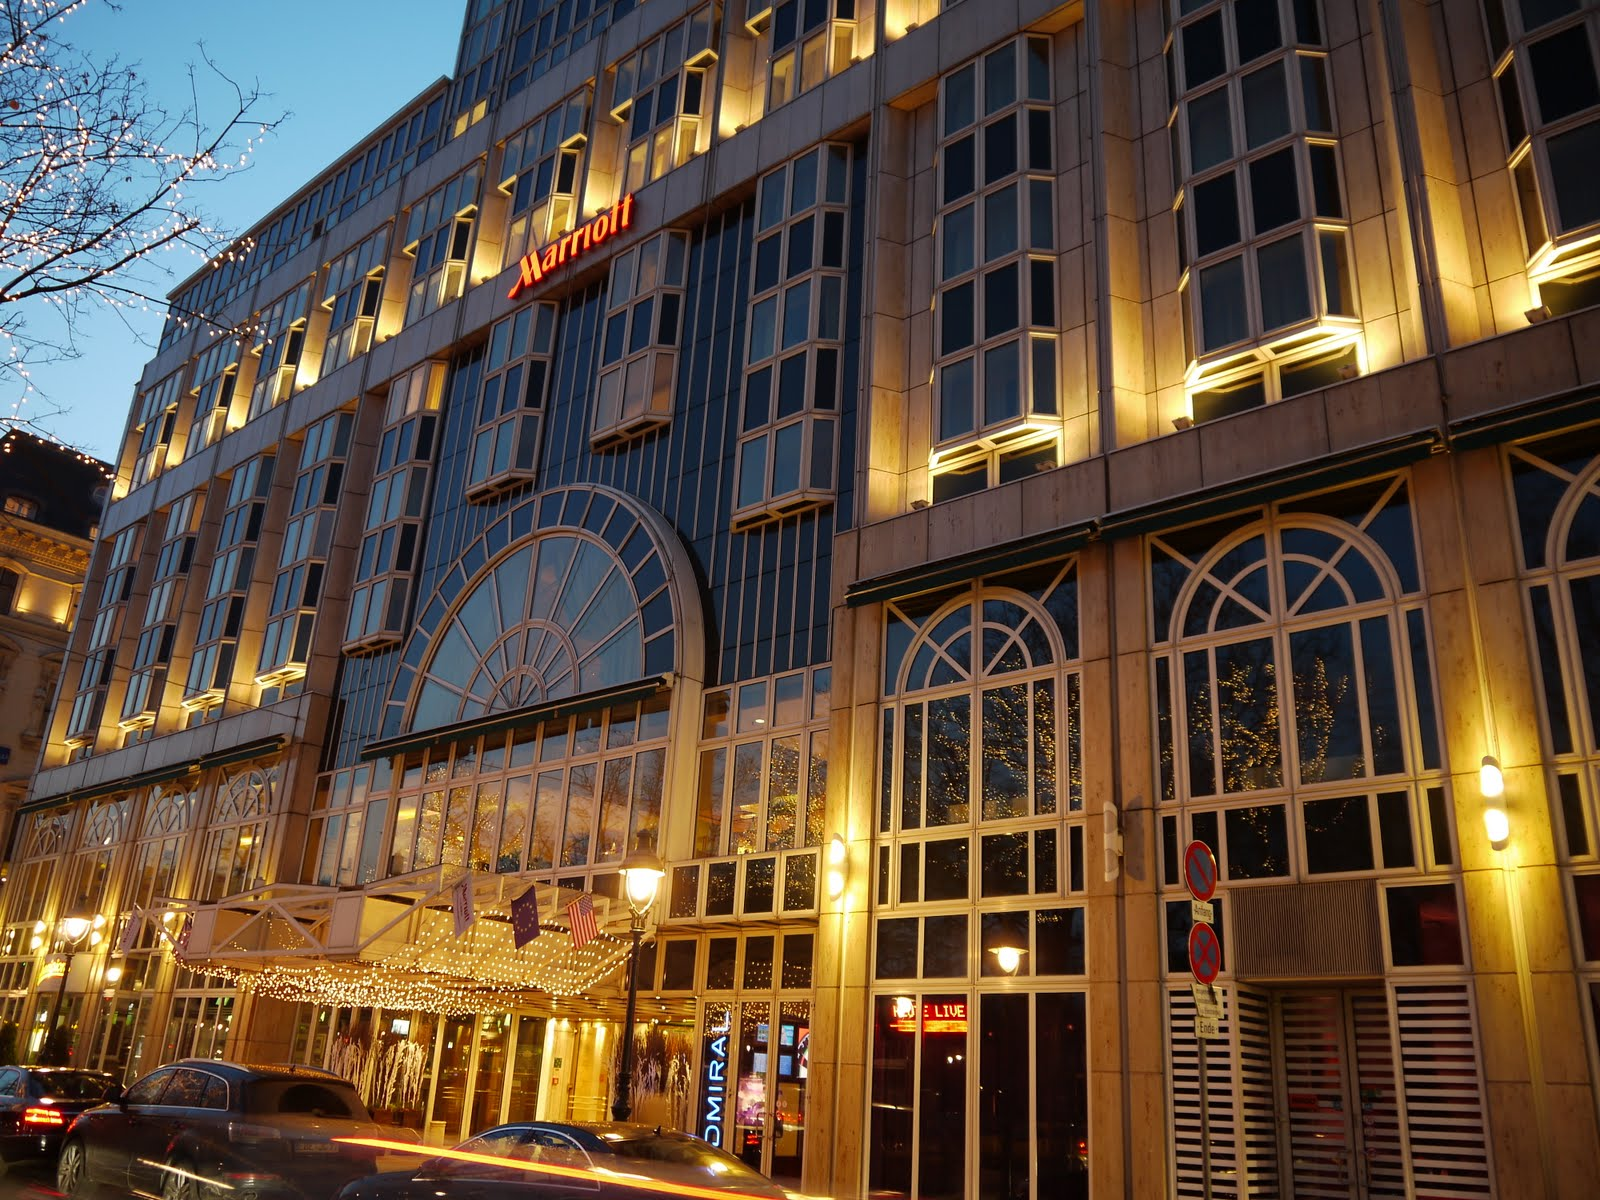 Hotel Marriott Vienna.jpg